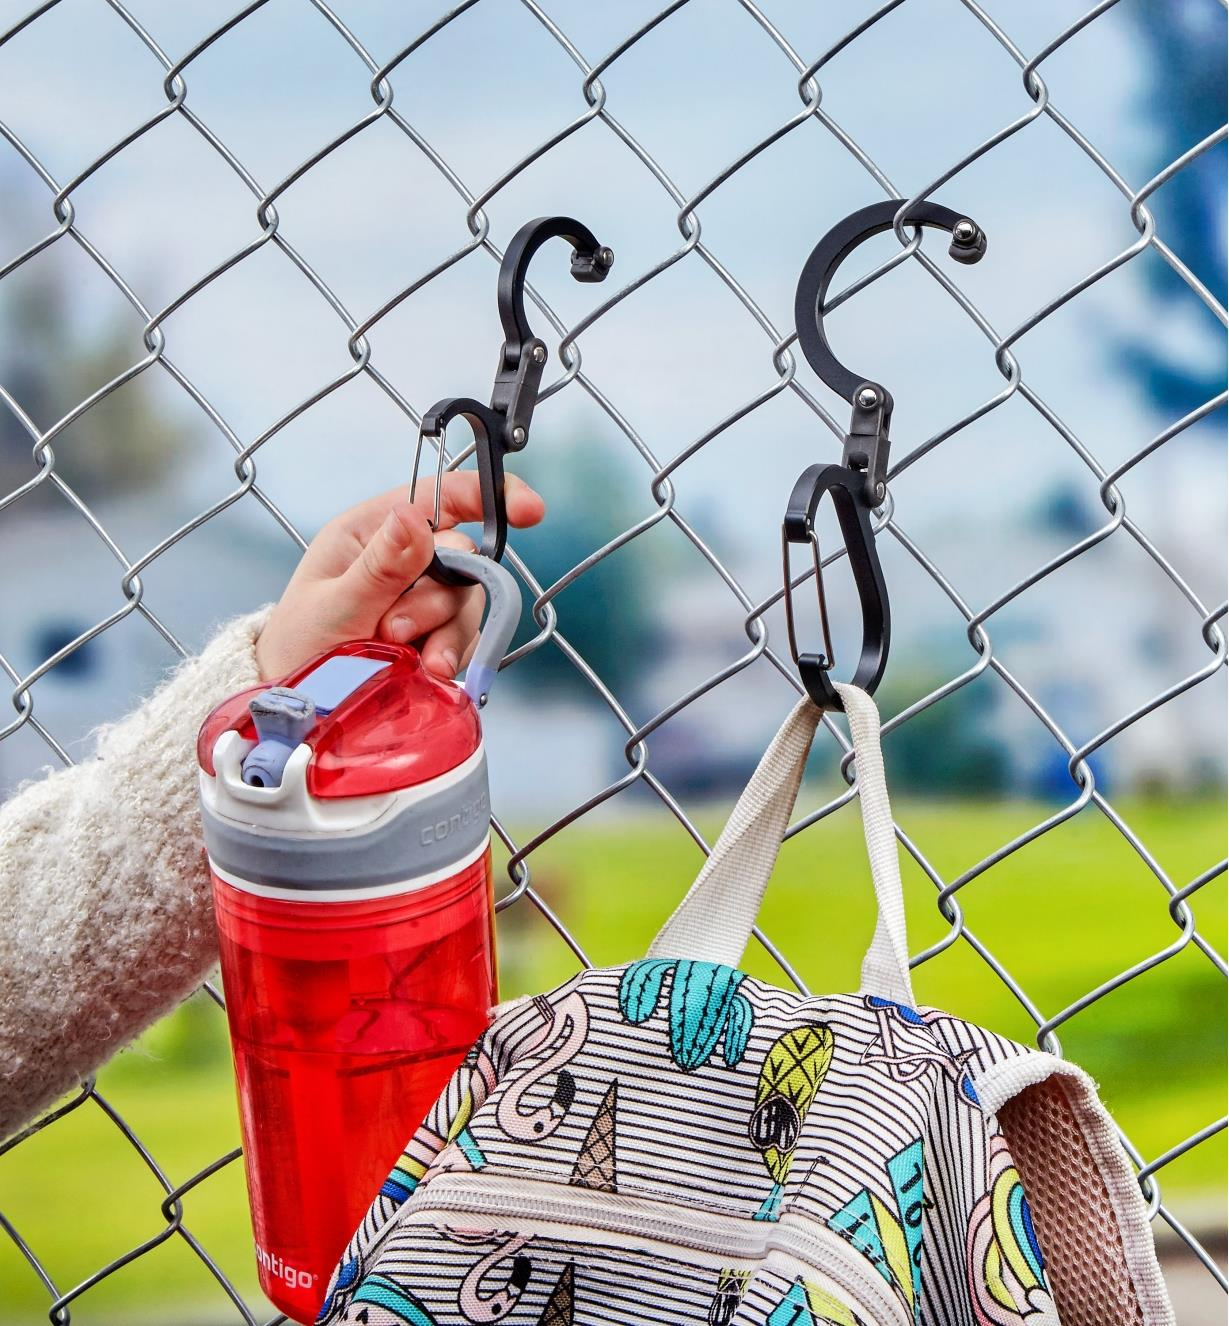 Two Heroclip carabiners used to hang a child's water bottle and backpack on a schoolyard fence